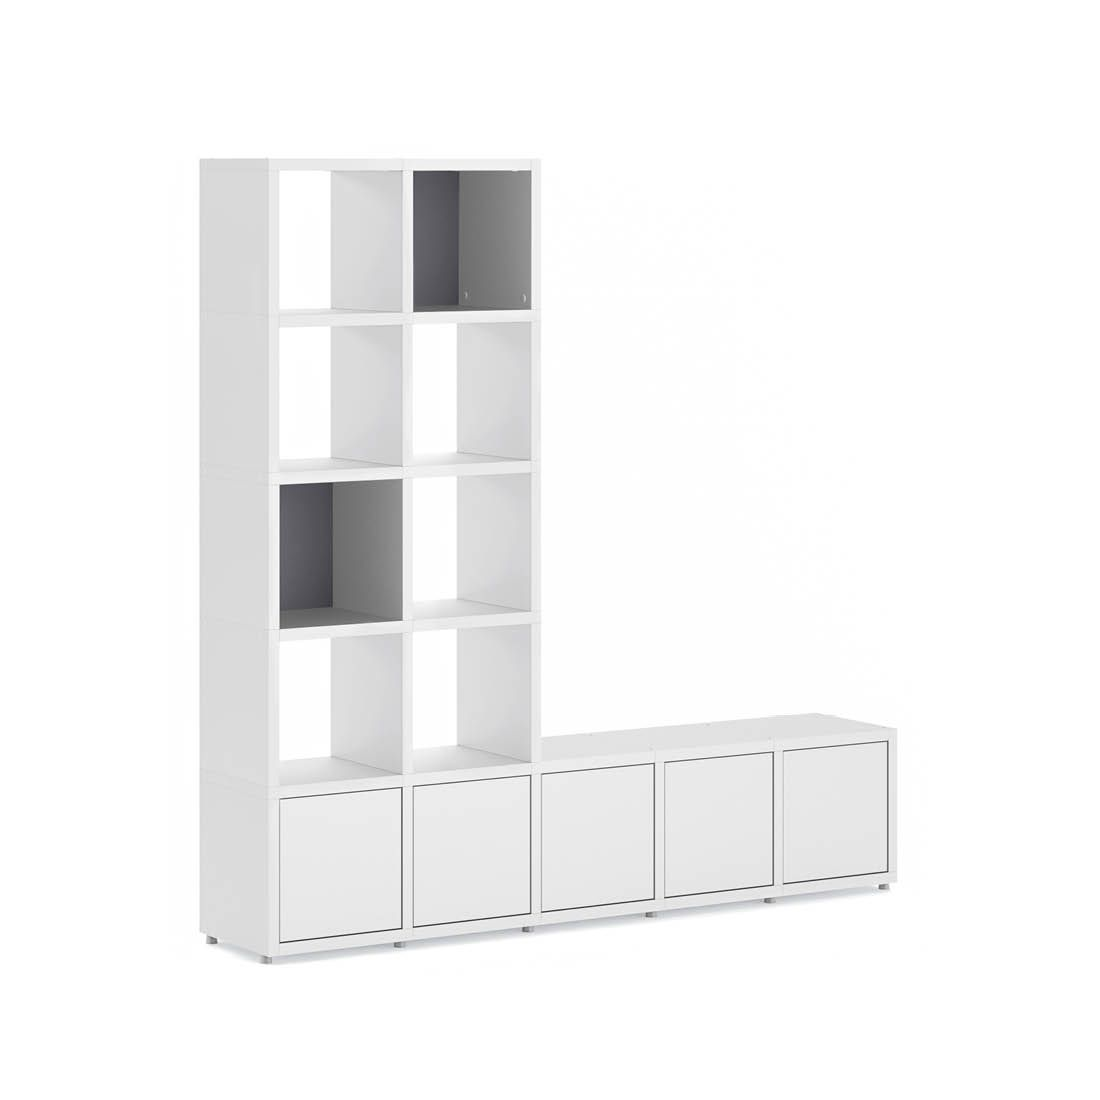 Regalraum Boon Boon 5x5 P2 Cube Storage Unit Room Divider Pinterest Cube